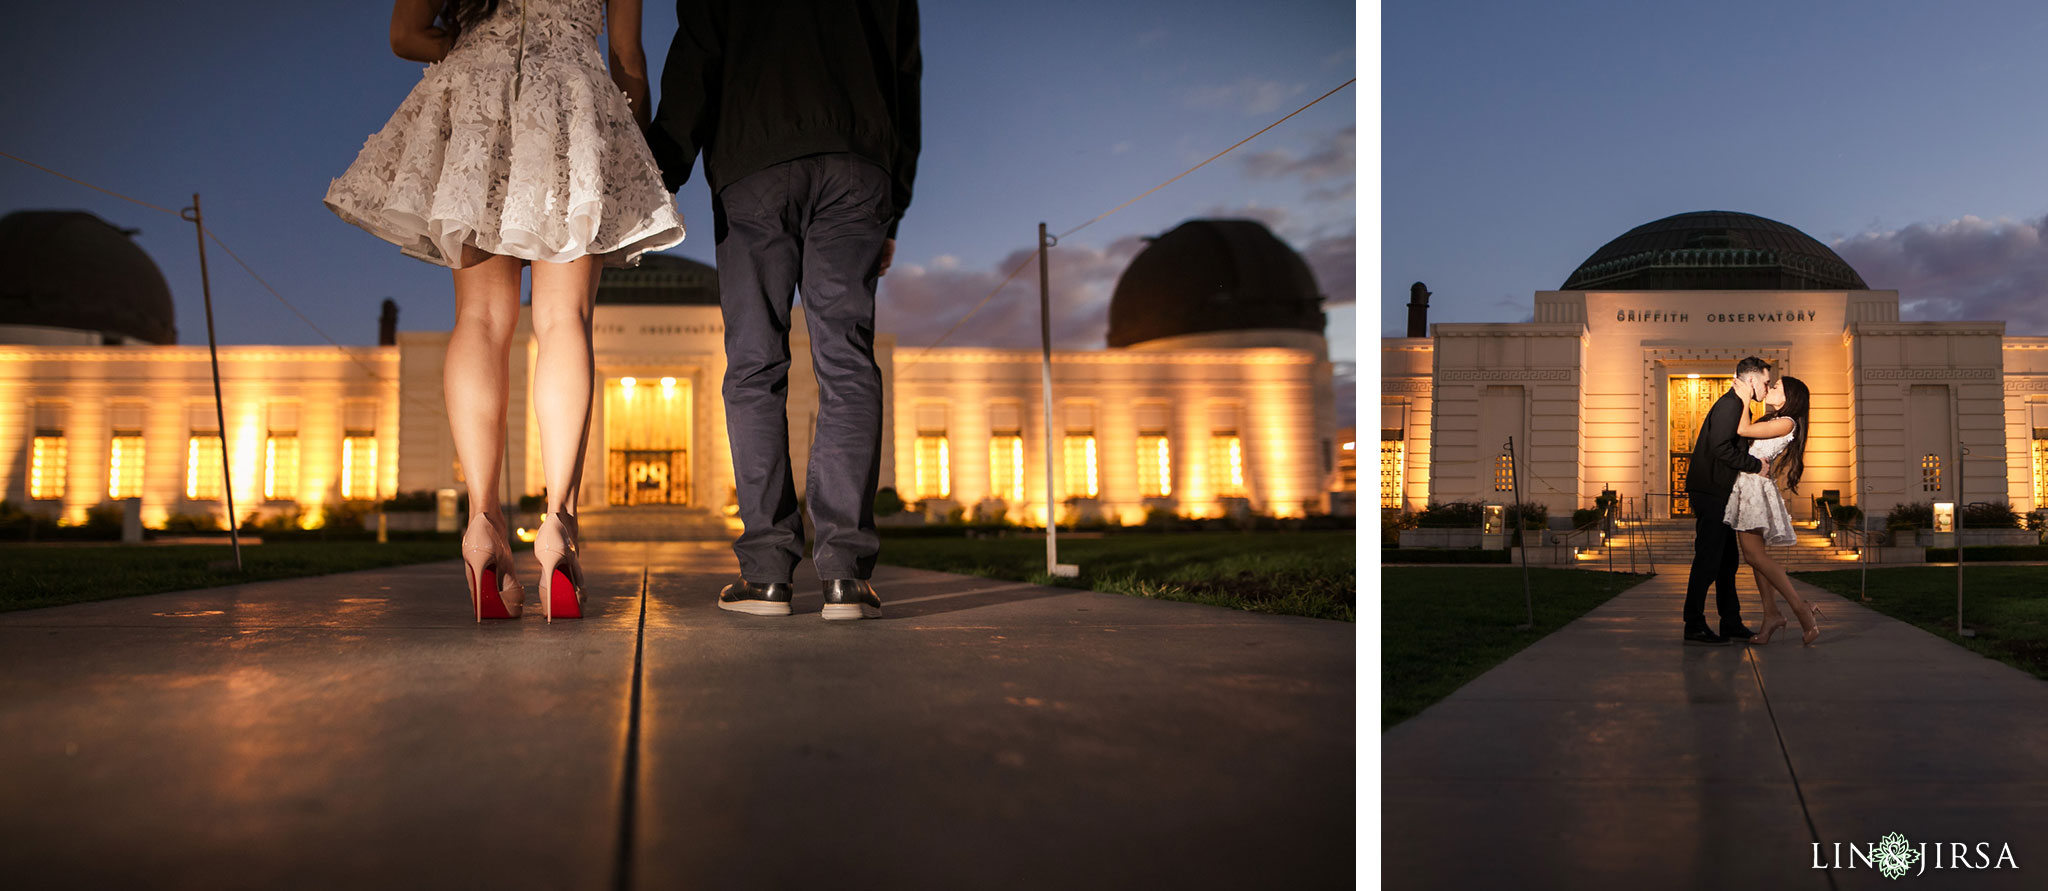 13 griffith observatory los angeles engagement photography